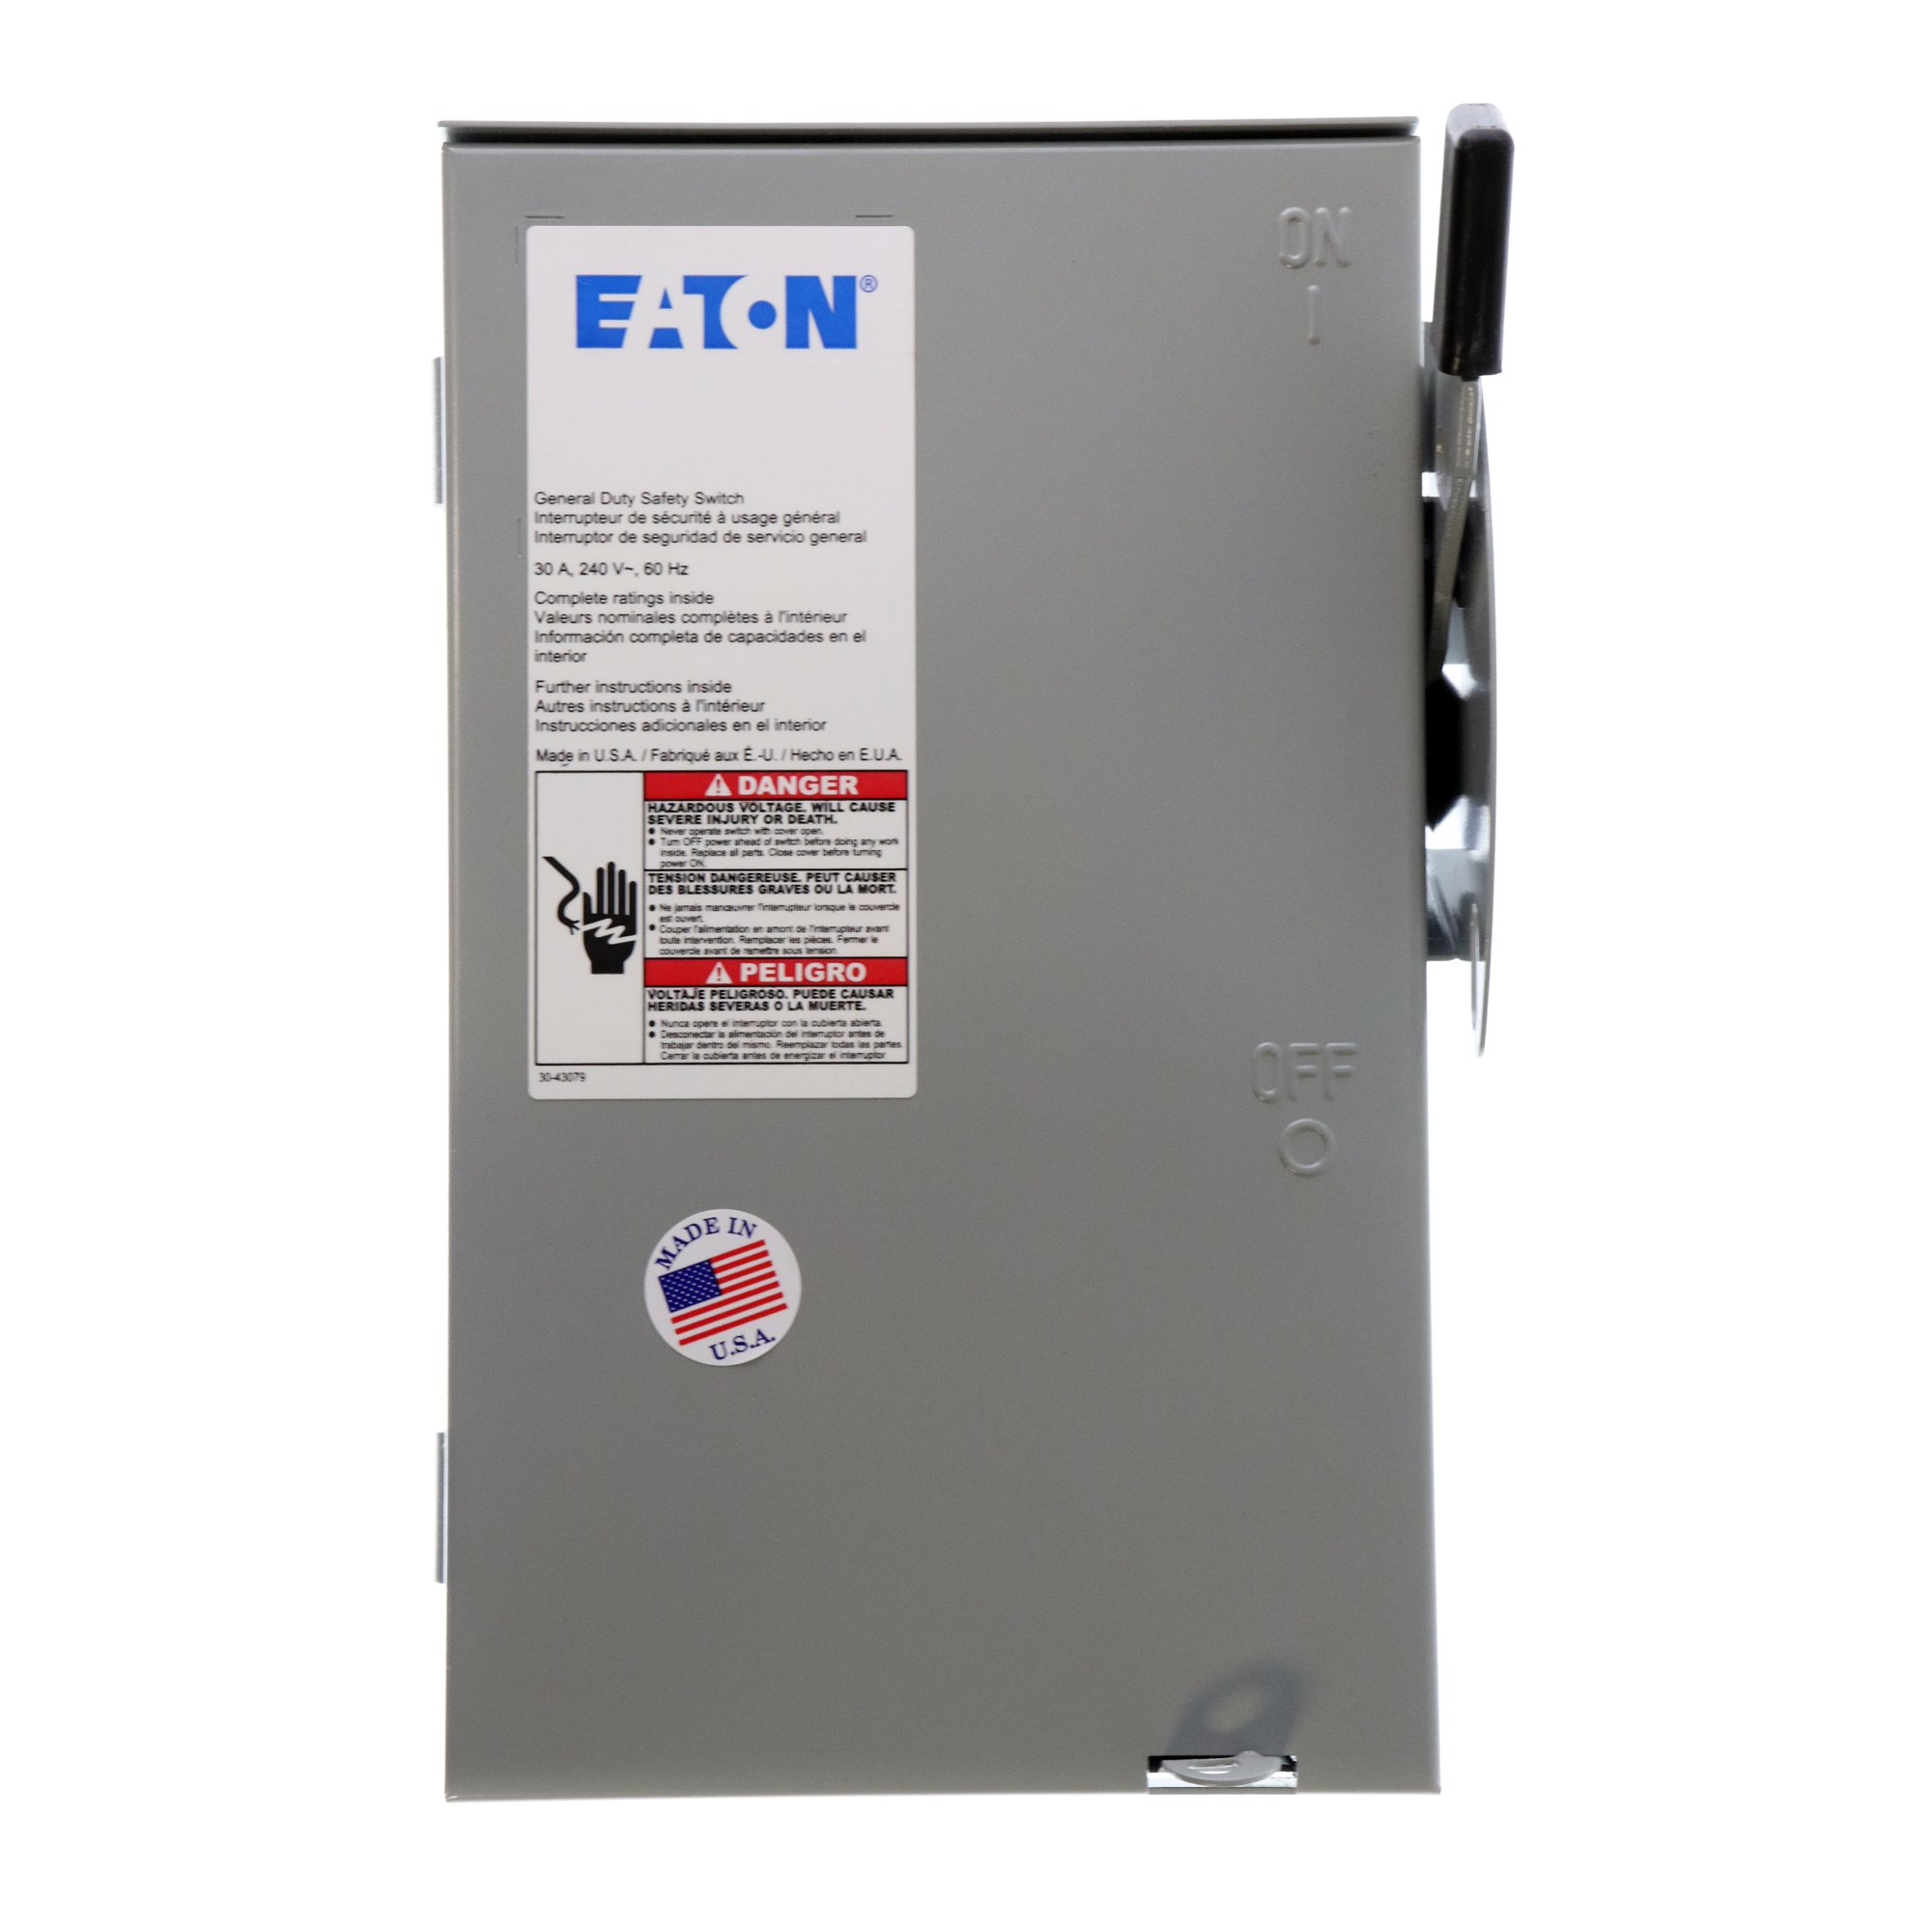 Eaton Cutler-Hammer DG321NRB Fusible Safety Switch, NEMA-3R, 30A, 240V, 4-Wire by Cutler & Hammer (Image #1)